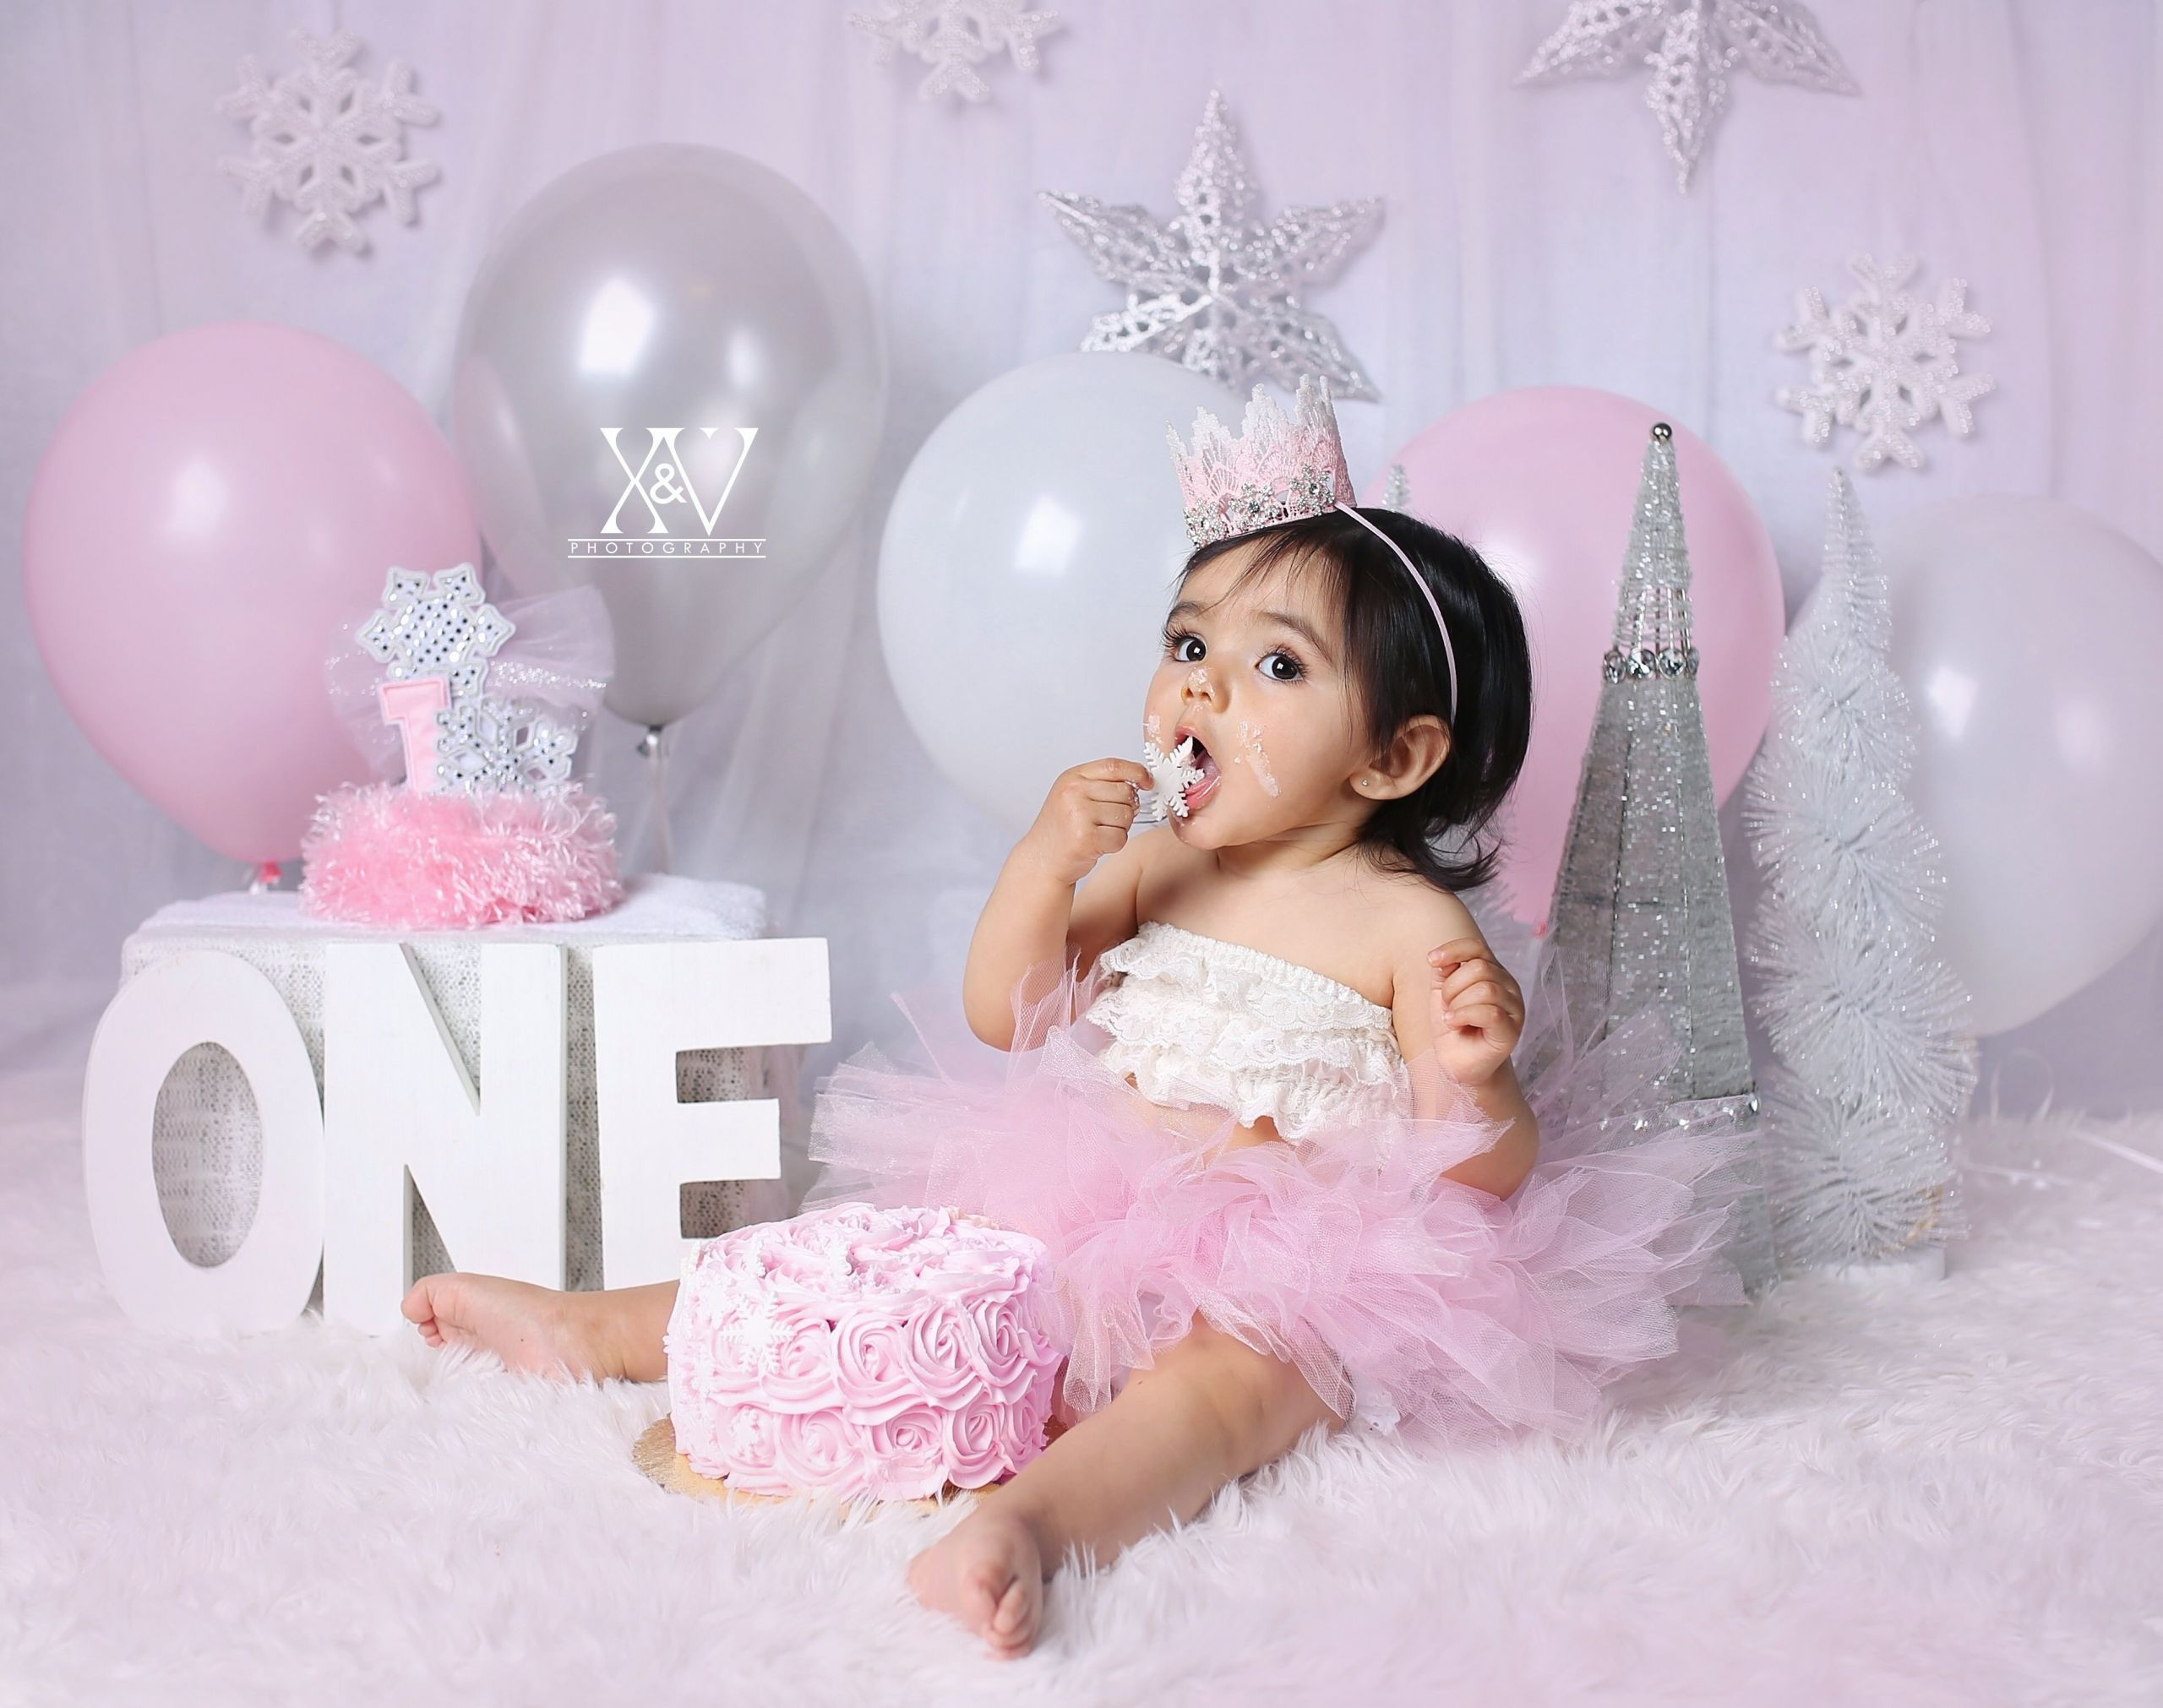 Winter Birthday Party Ideas For 1 Year Old  Winter ONEderland birthday